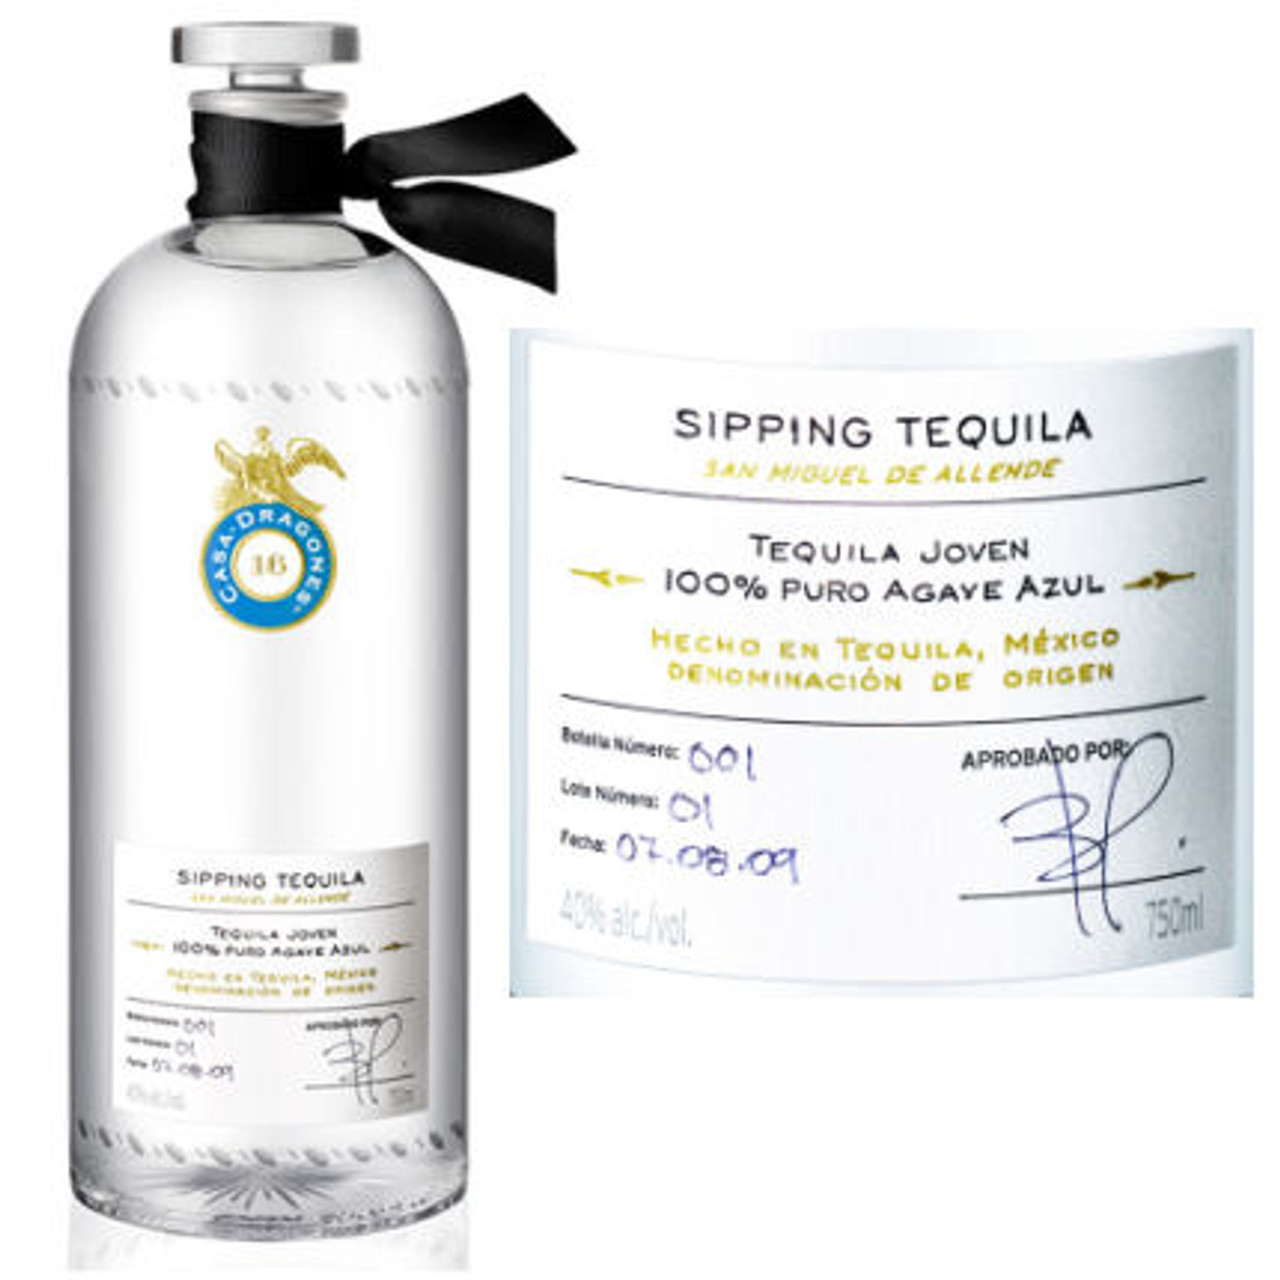 Casa Dragones Agave Azul Sipping Tequila 750ml